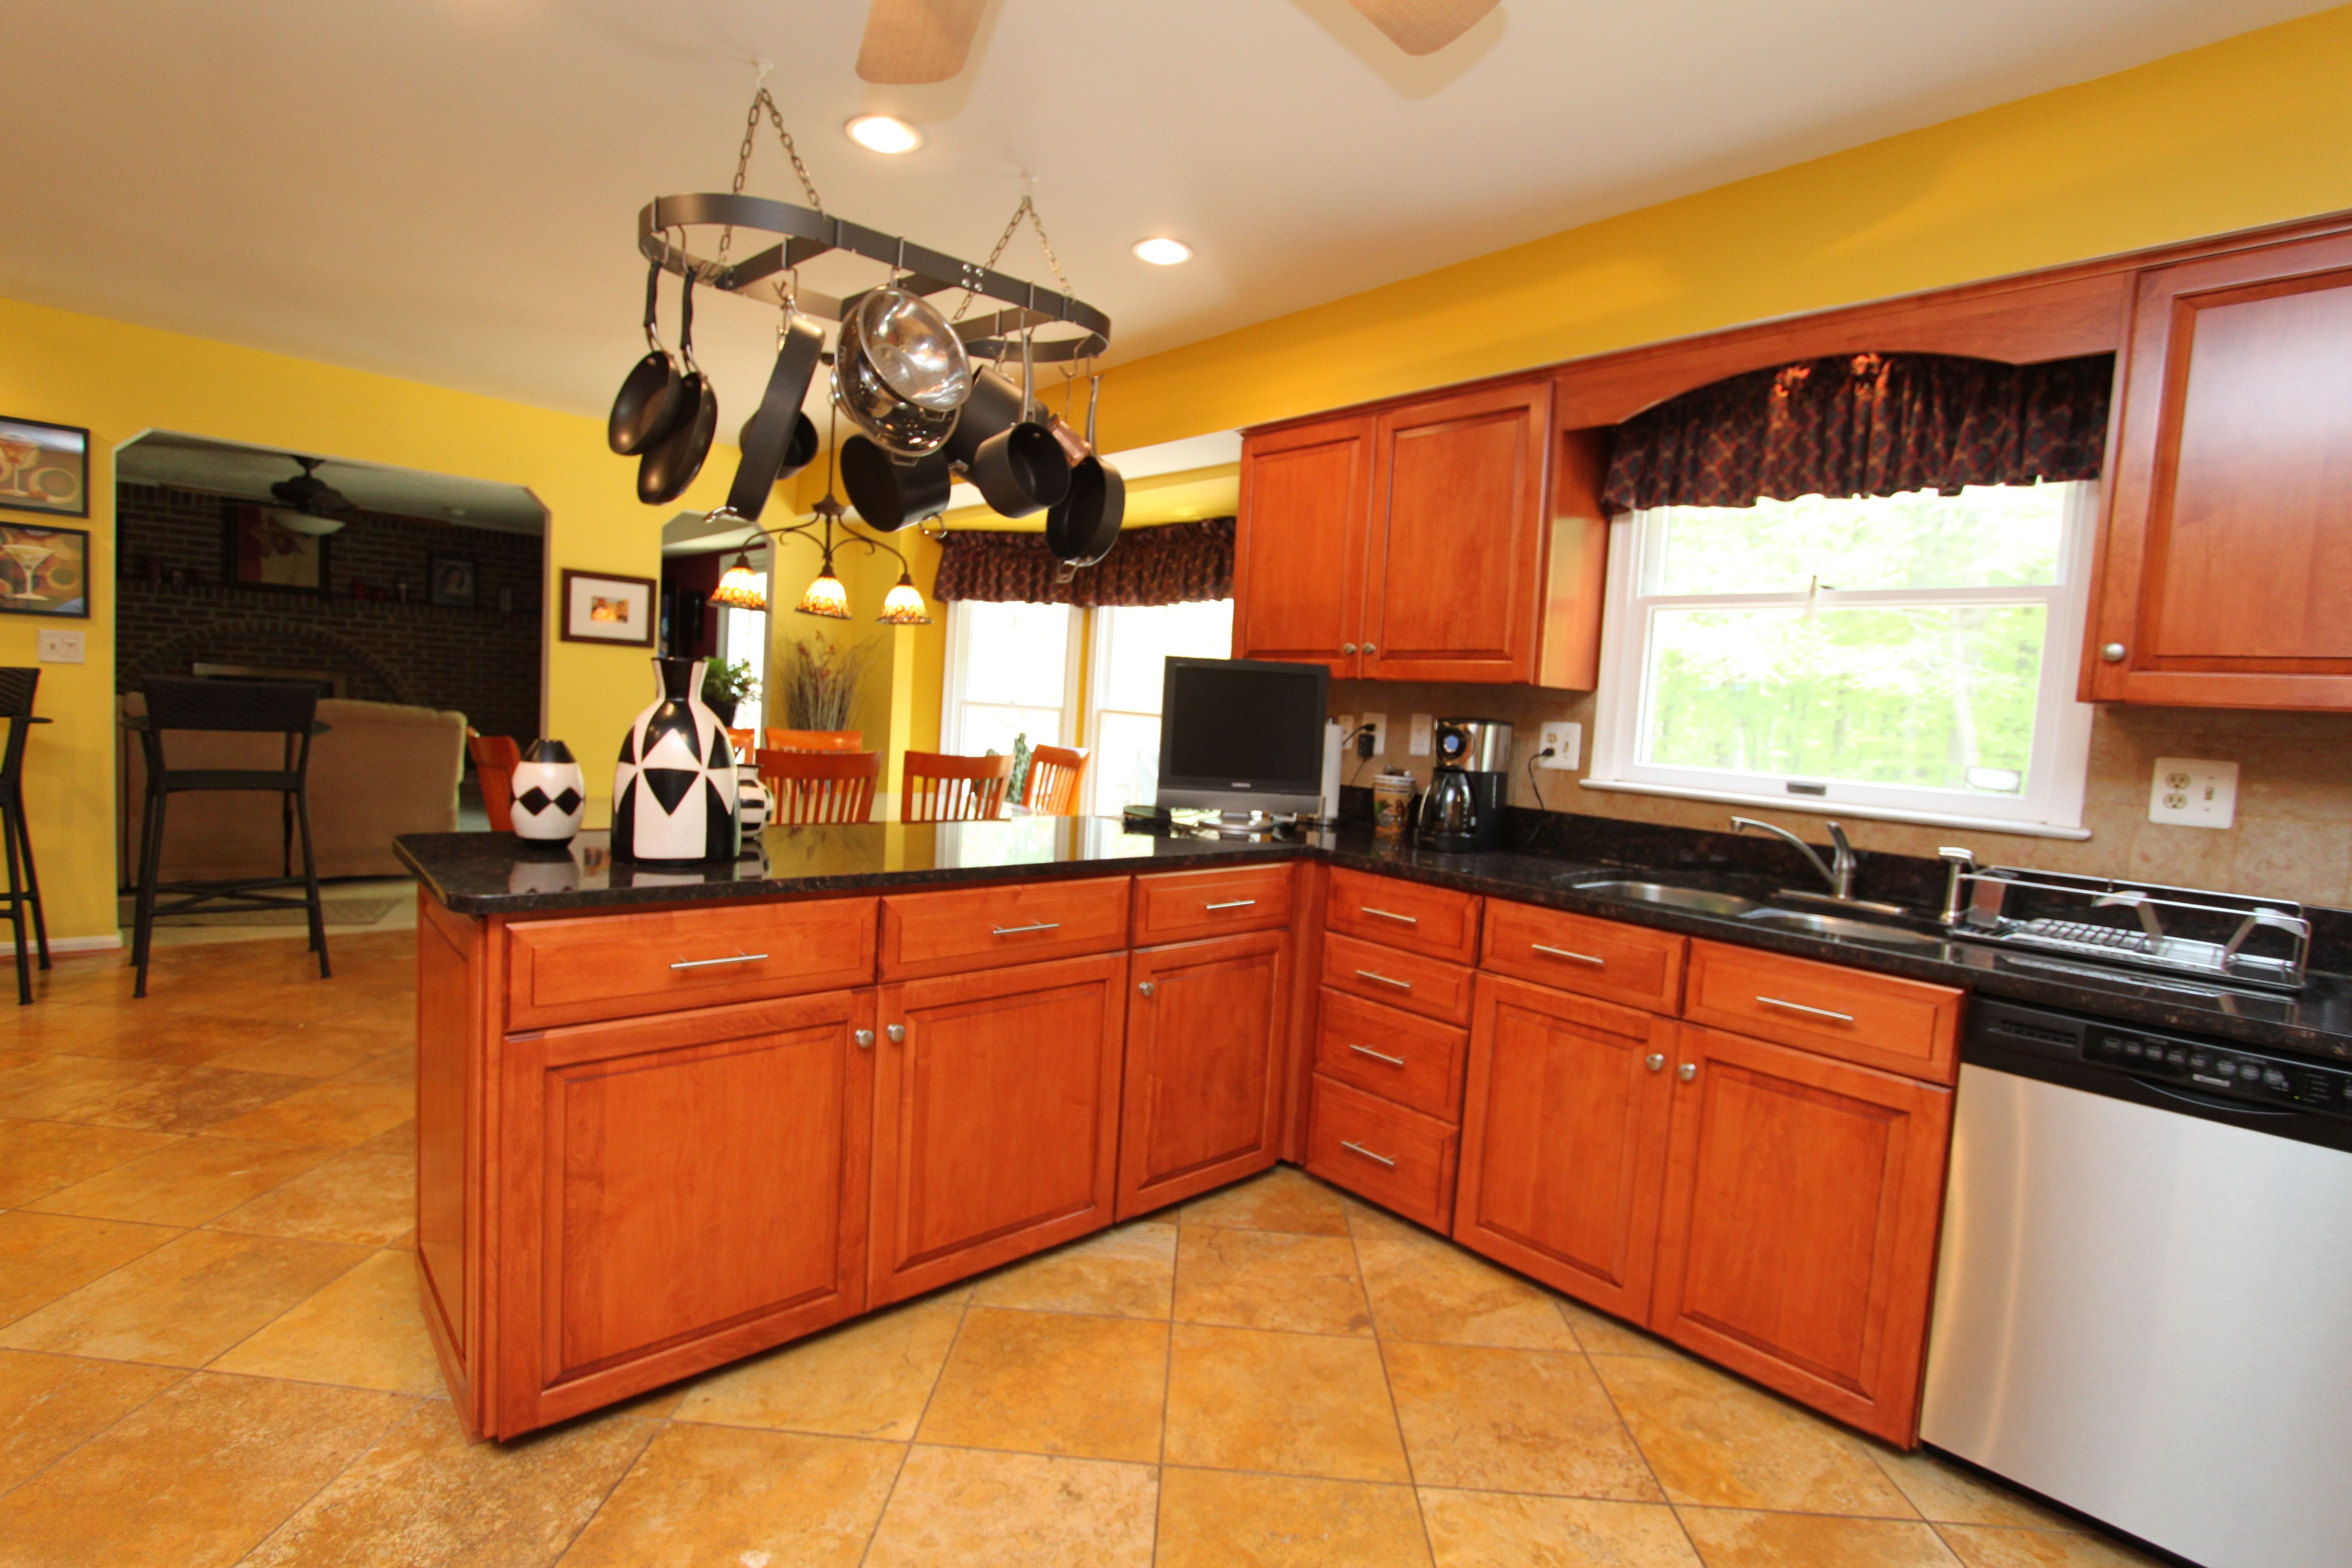 Kitchen Saver Cabinet Refacing Done Right Oak Kitchen Cabinets Custom Kitchen Cabinets Kitchen Cabinets